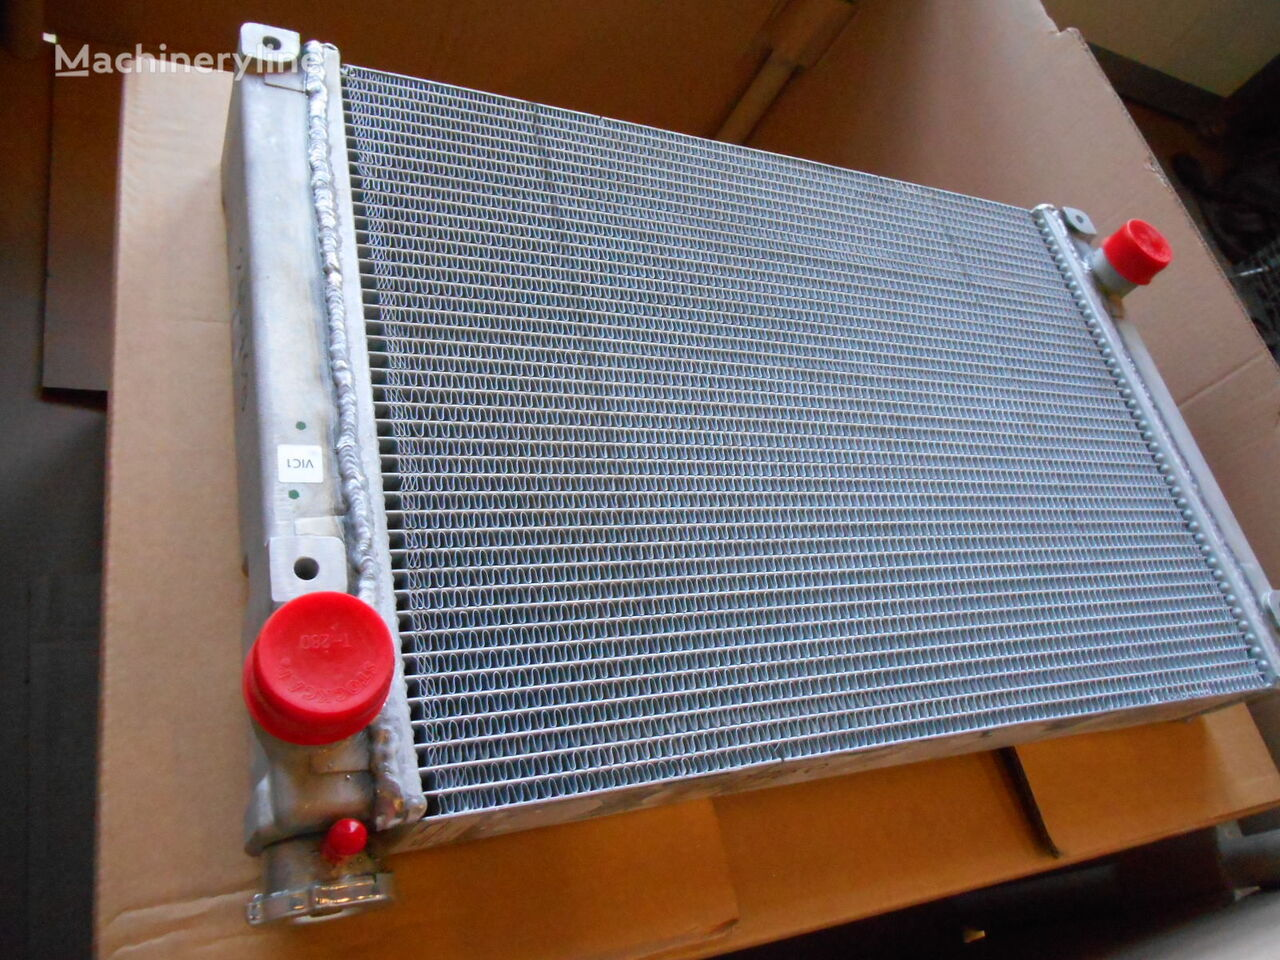 CASE Adams engine cooling radiator for CASE C227 compact track loader